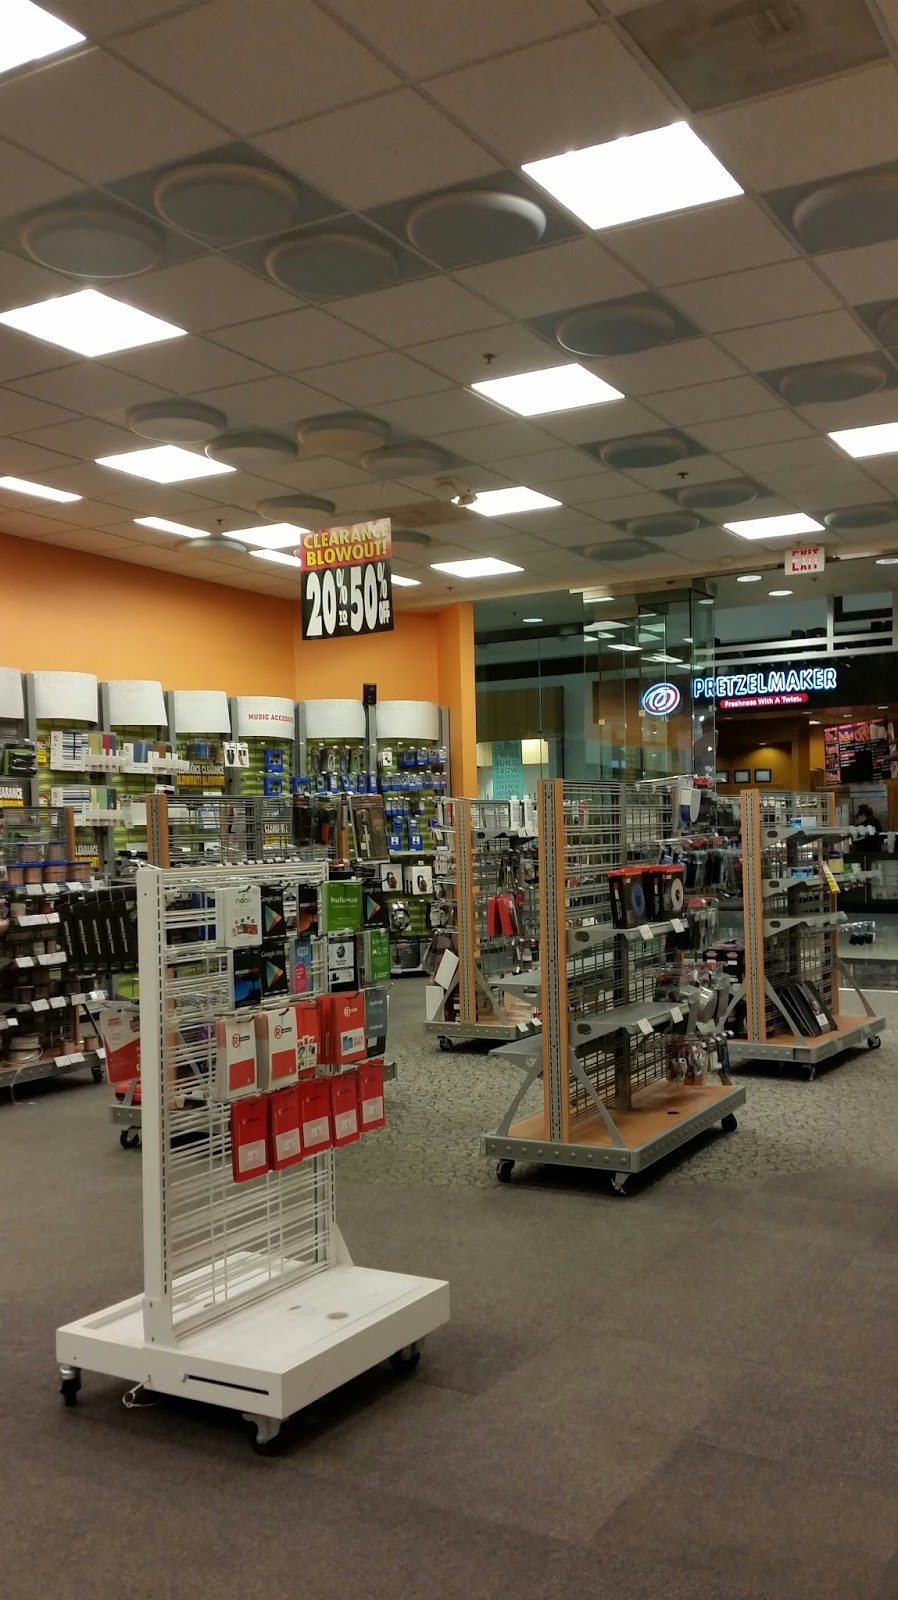 Hook up tackle store - How To Find The man Of Your type